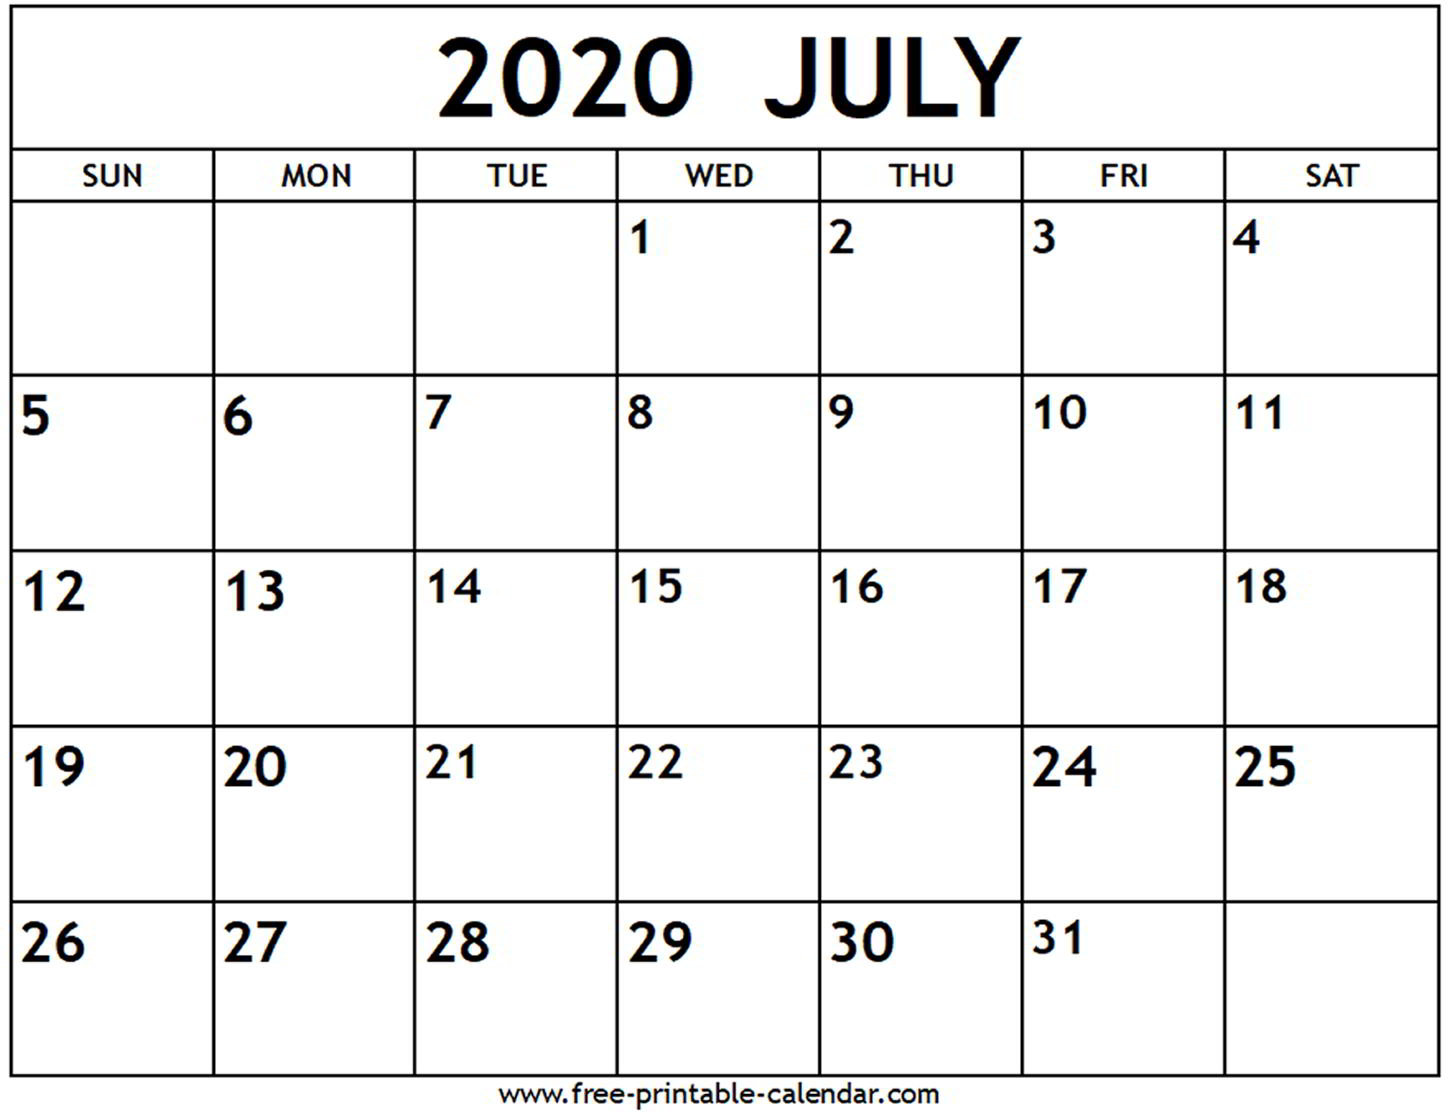 Calendar For 2020 July - Wpa.wpart.co